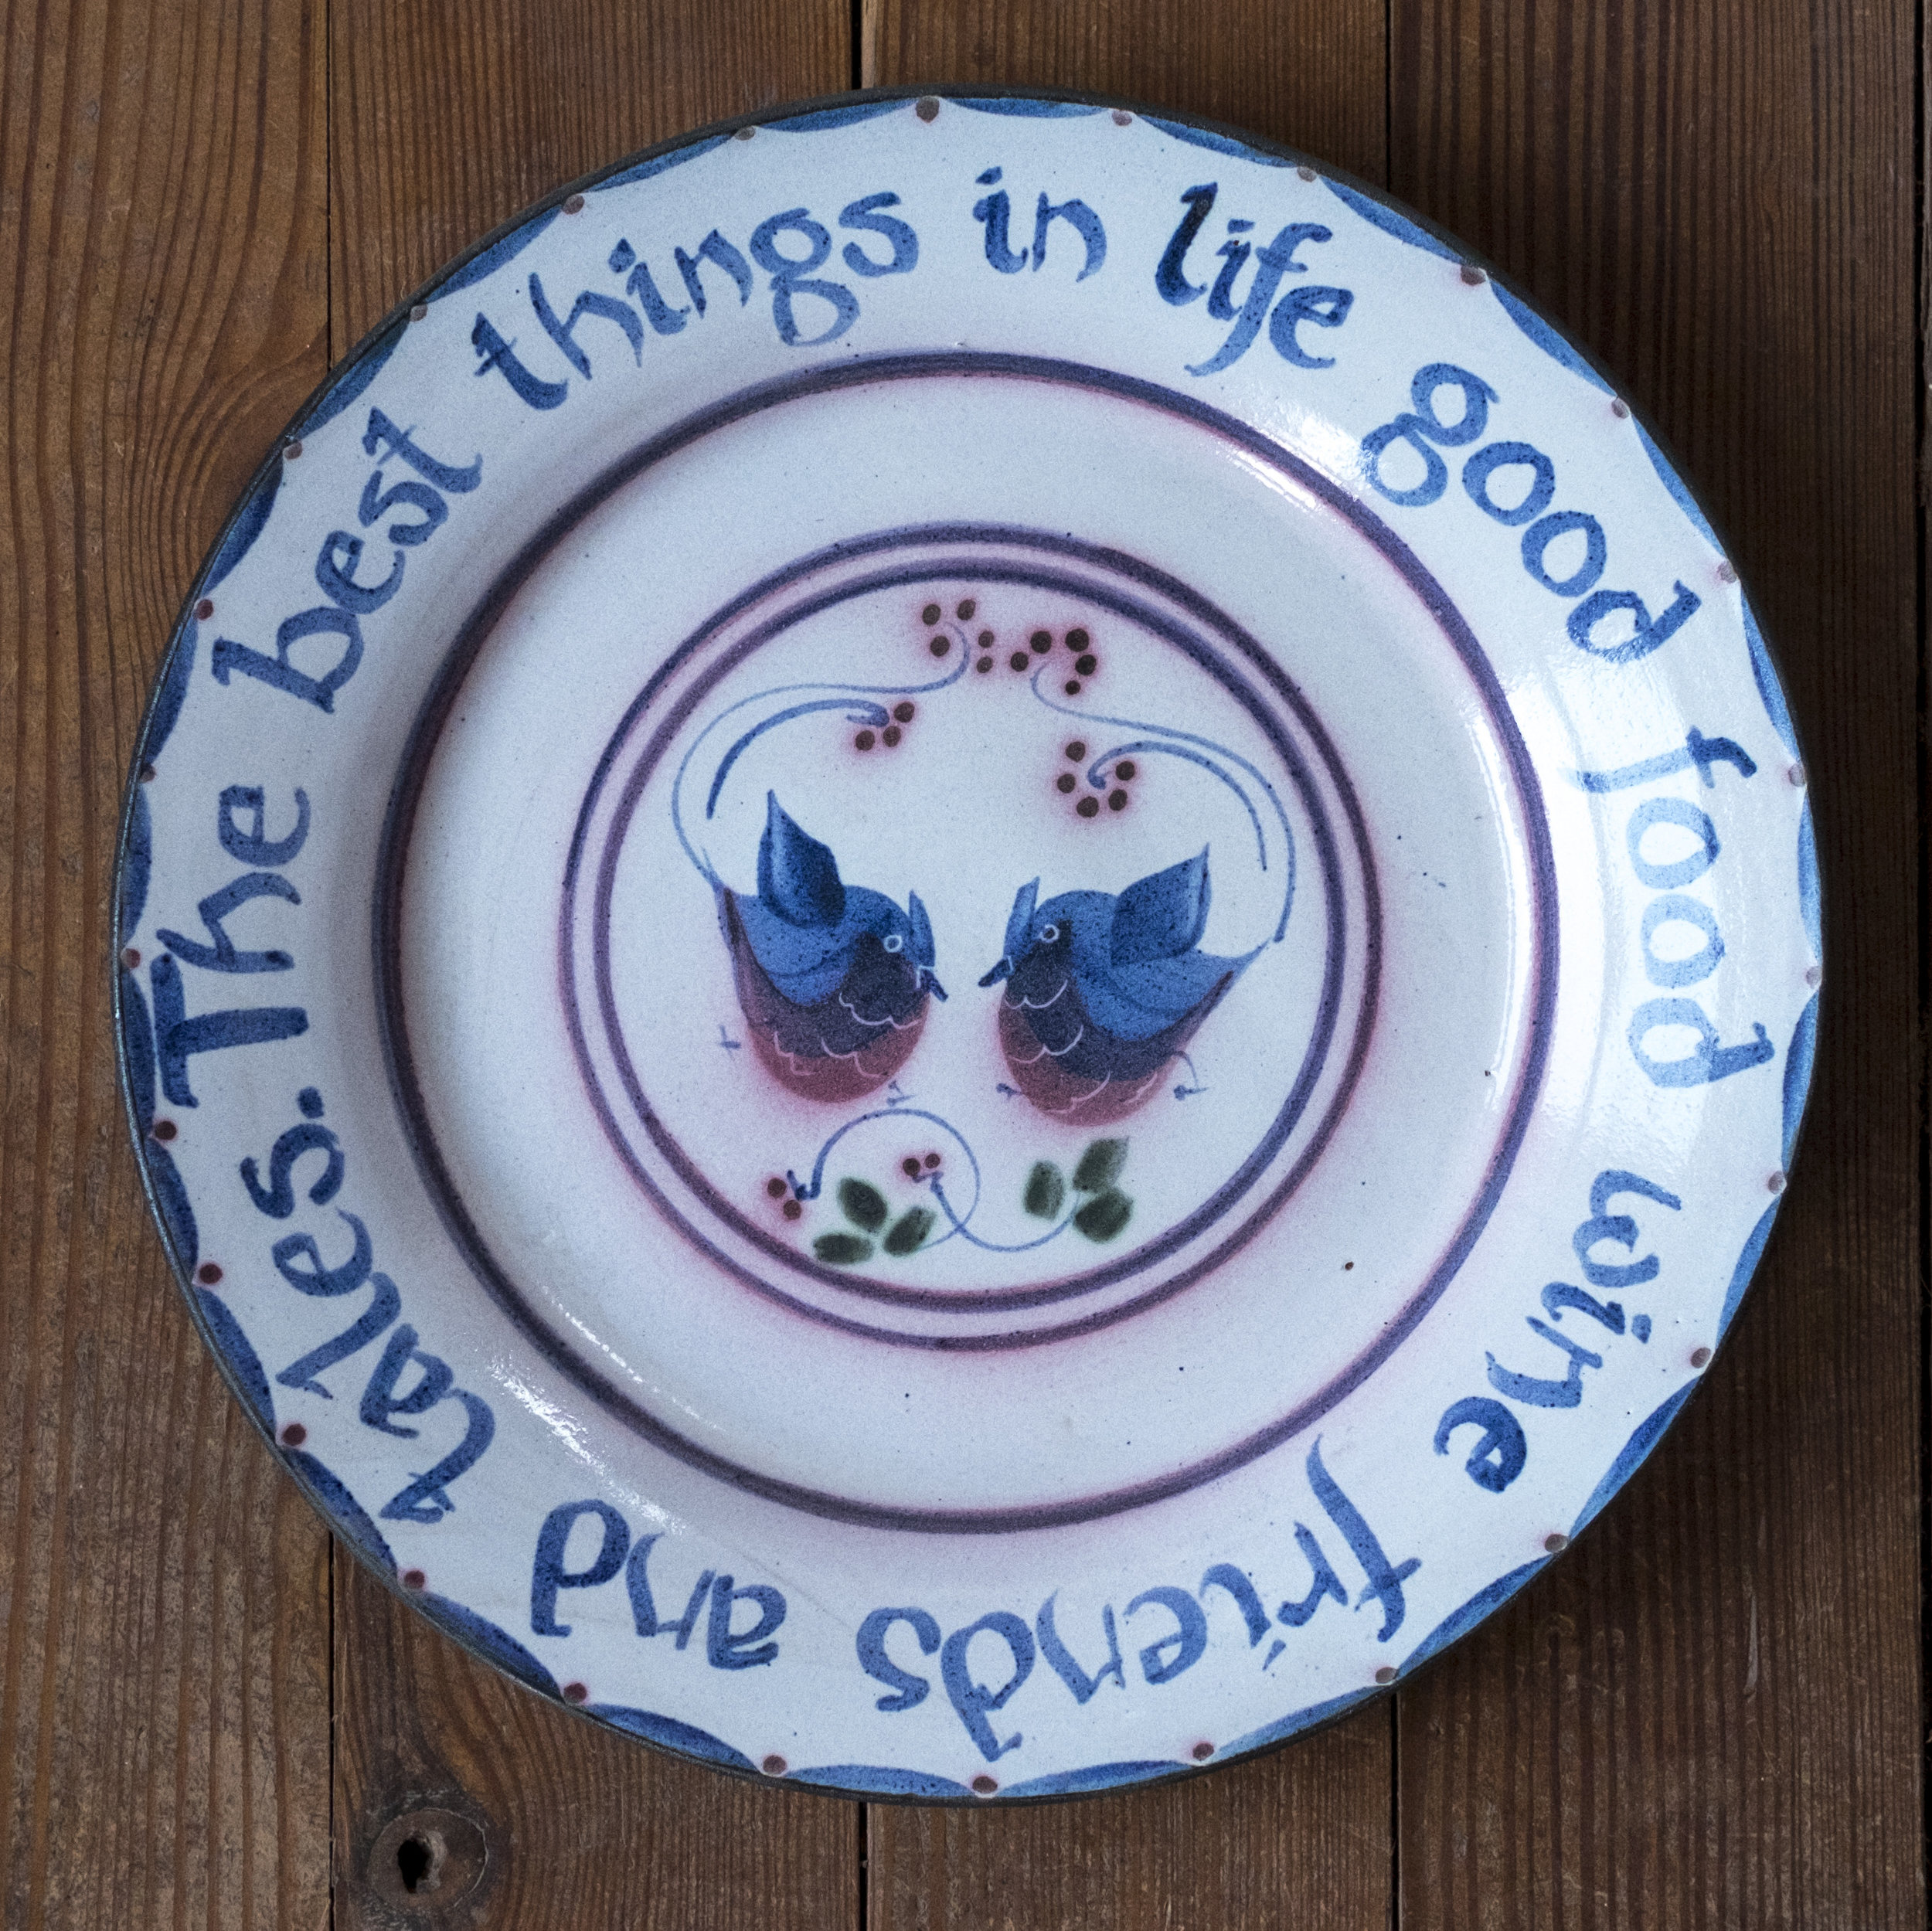 Kinsman Blake Ceramic The Best Things in Life, Dish, Plate